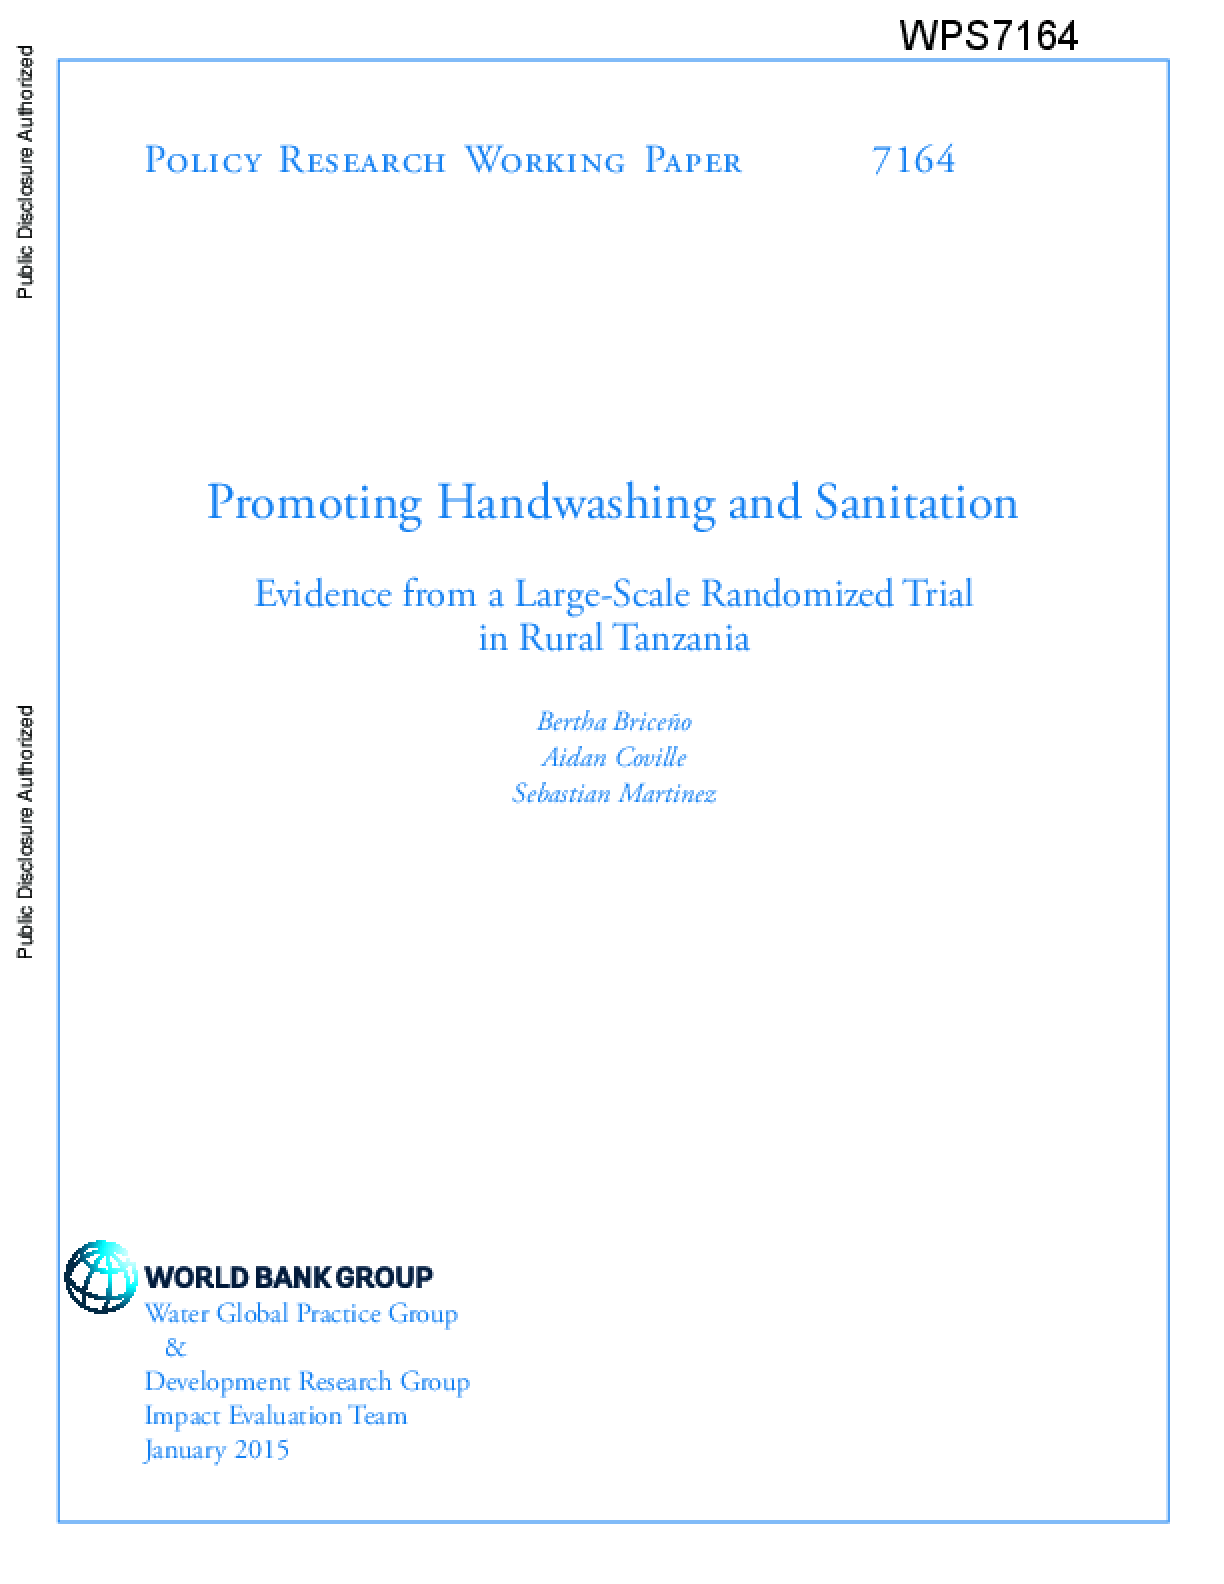 Promoting Handwashing and Sanitation: Evidence From a Large-Scale Randomized Trial in Rural Tanzania